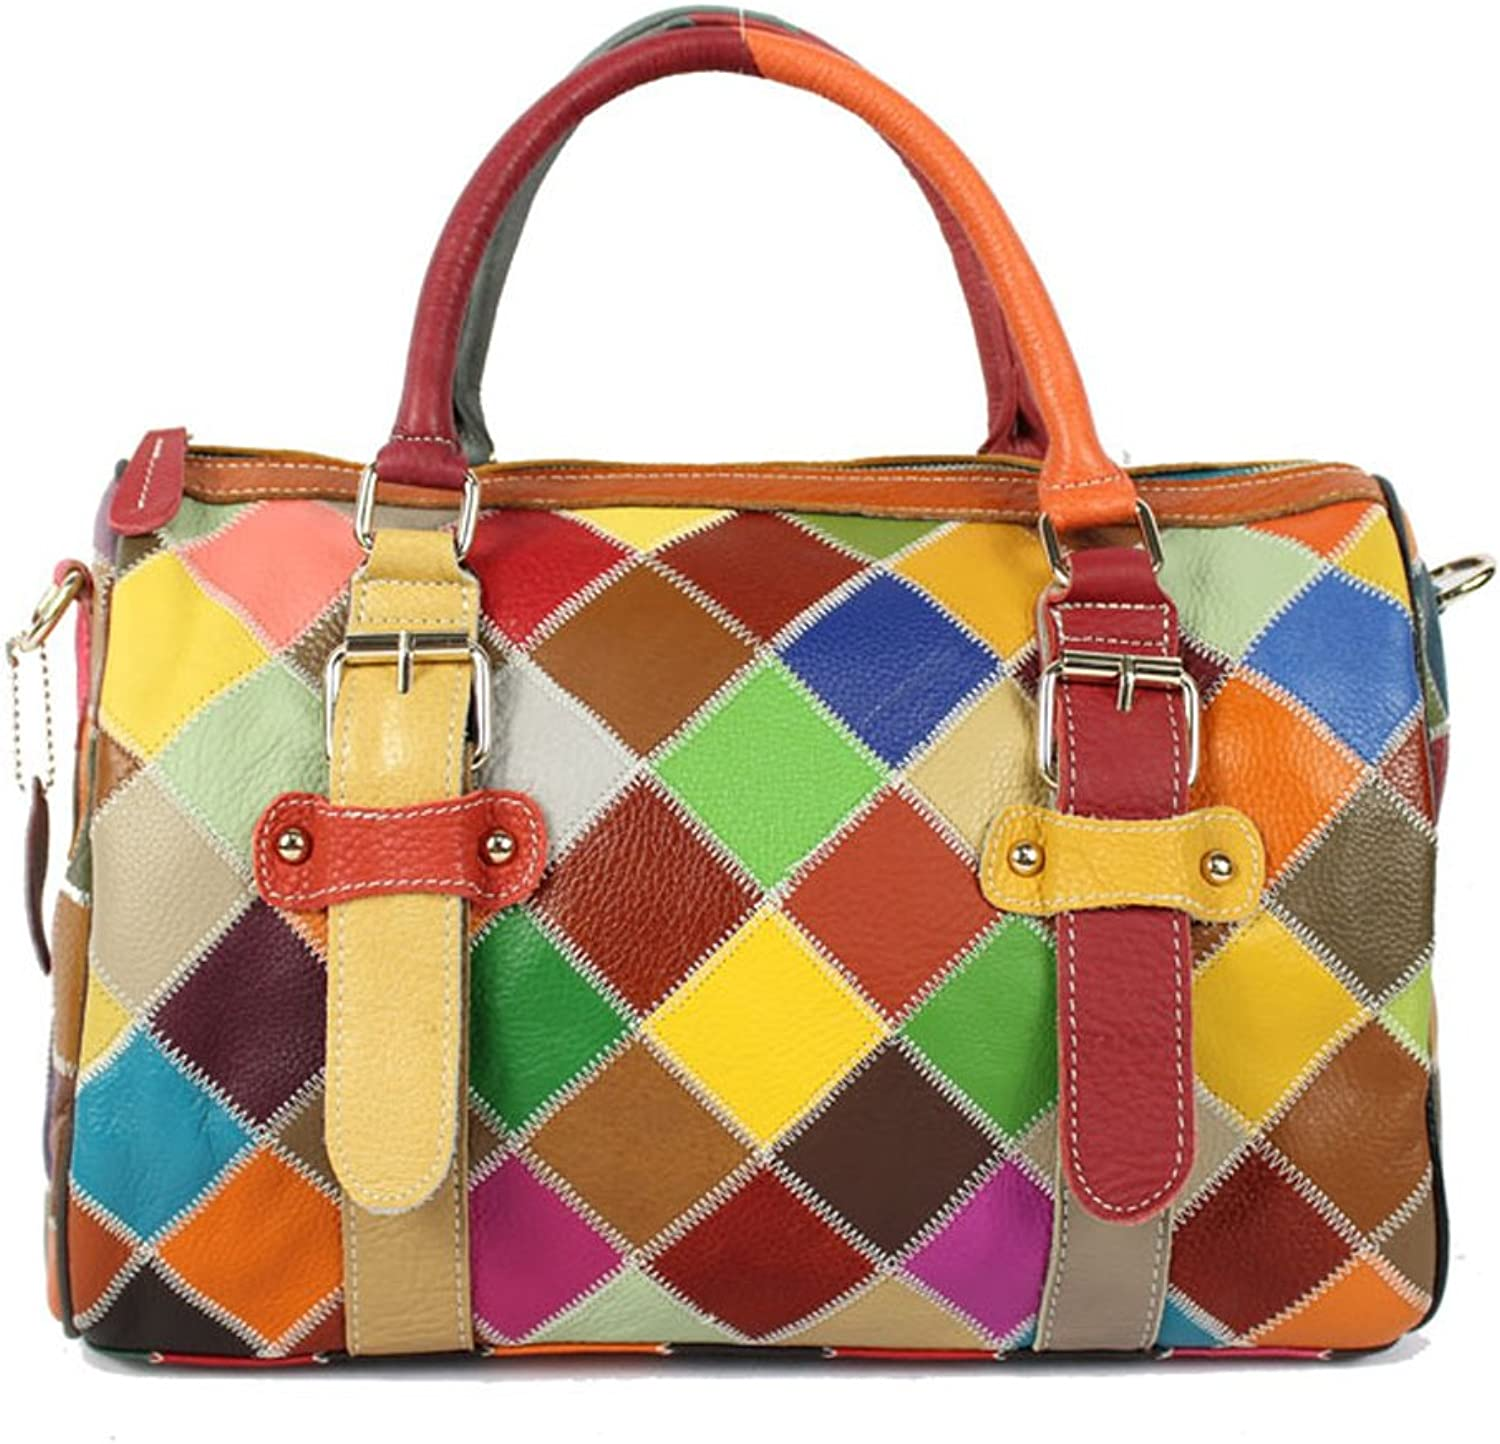 Genuine Cowhide Handbag Multi Plaid Spliced Women'S Shoulder Bag